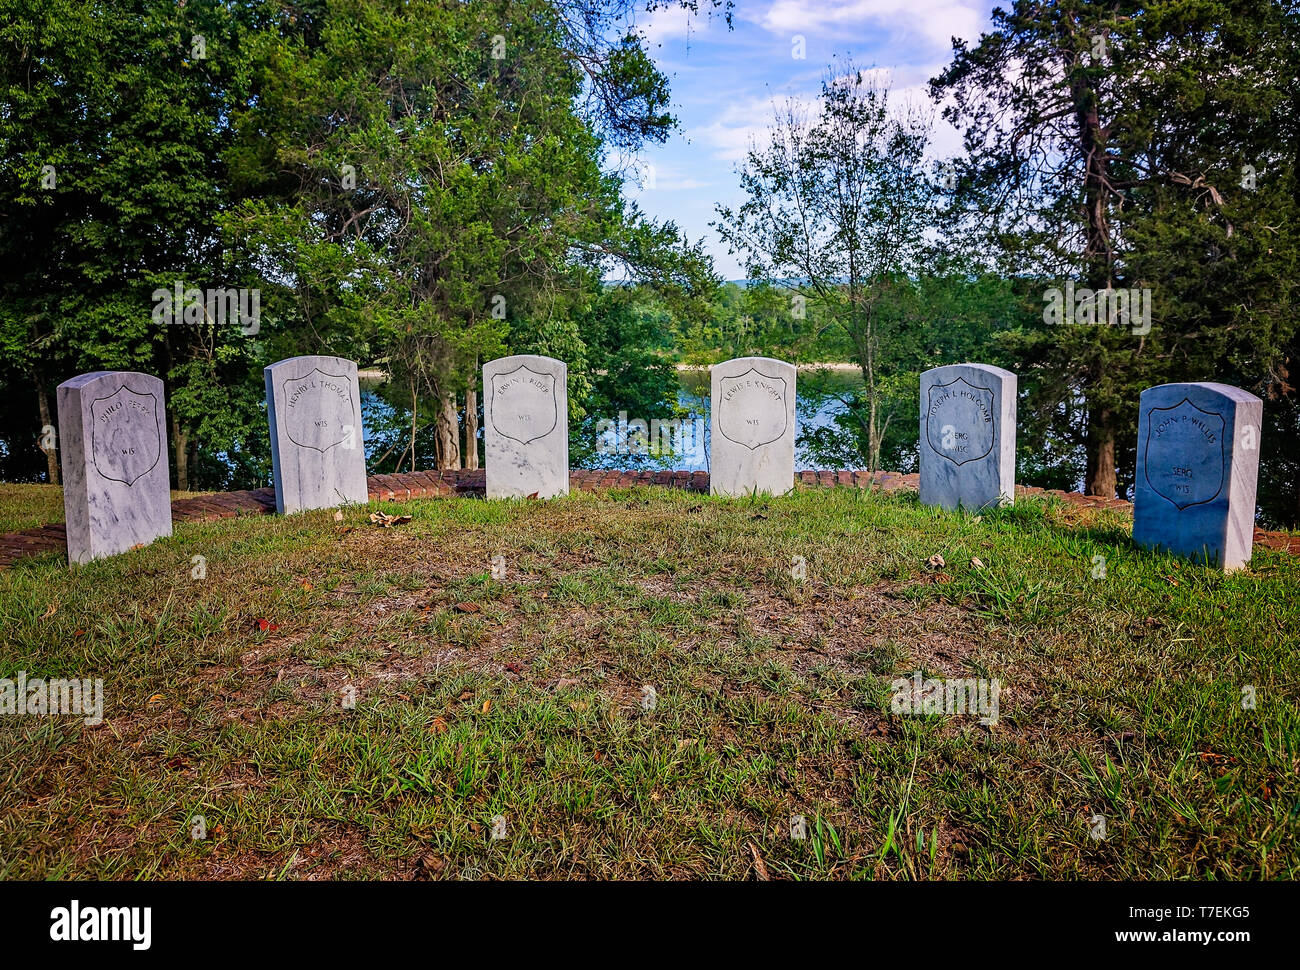 Headstones mark the Wisconsin Color Guards' graves at Shiloh National Cemetery in Shiloh National Military Park, Sept. 21, 2016, in Shiloh, Tennessee. - Stock Image